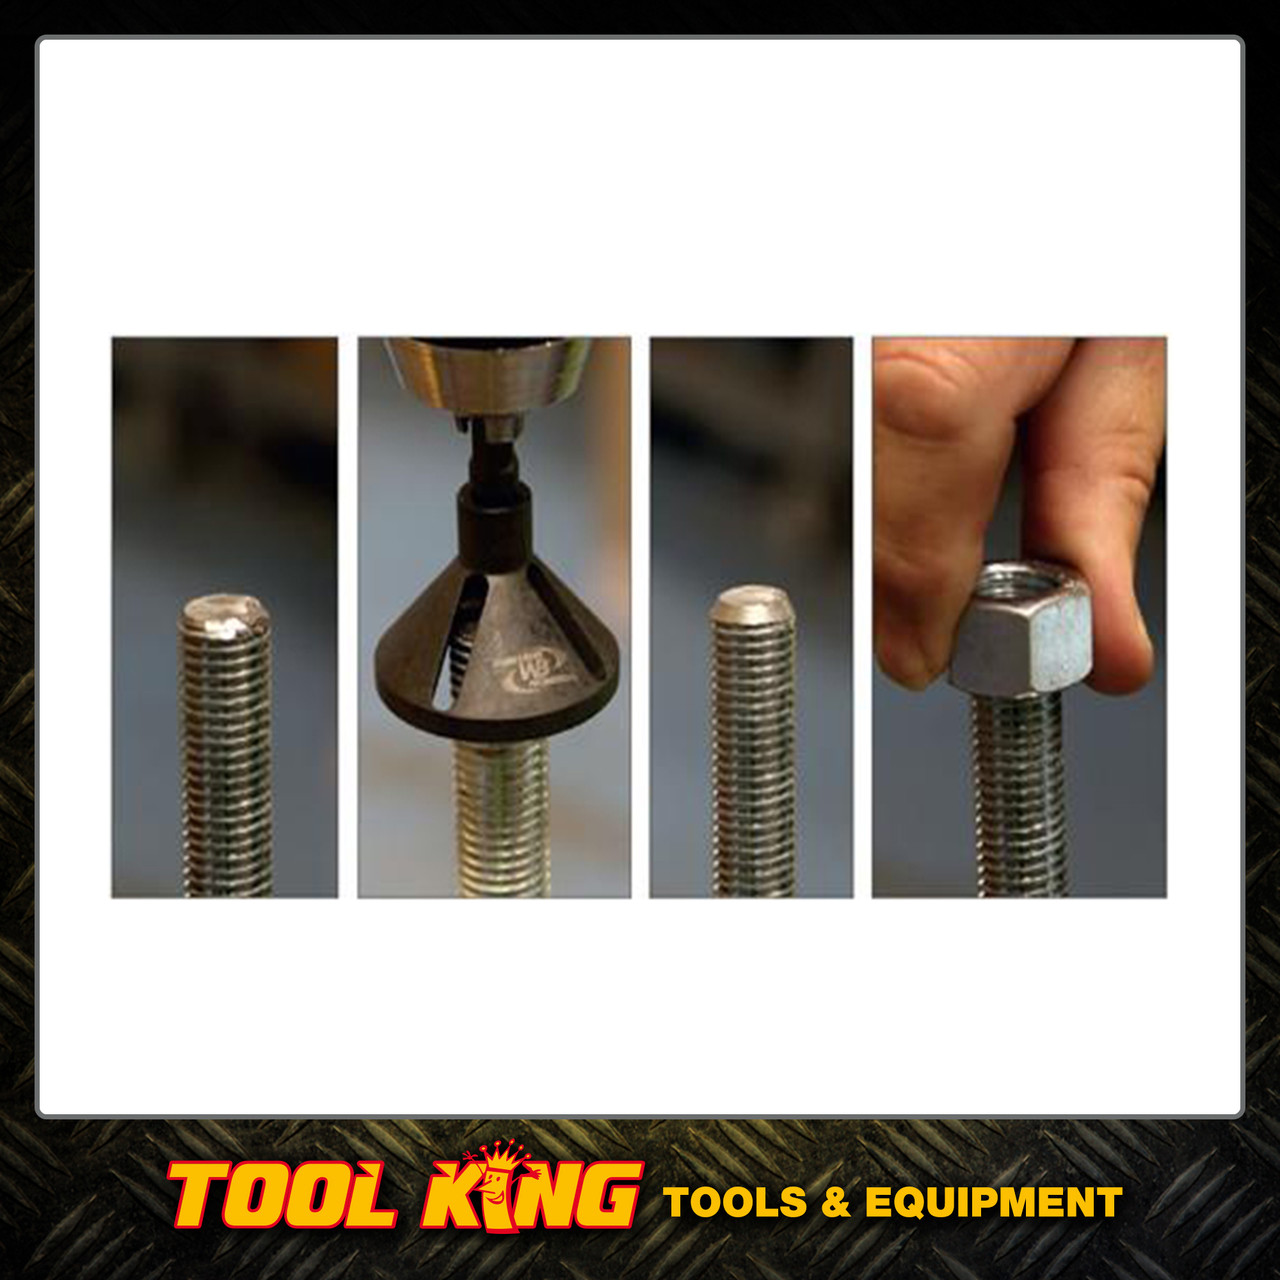 Chamfer pro Bolt and threaded rod Deburring tool PROFESSIONAL 2-12mm